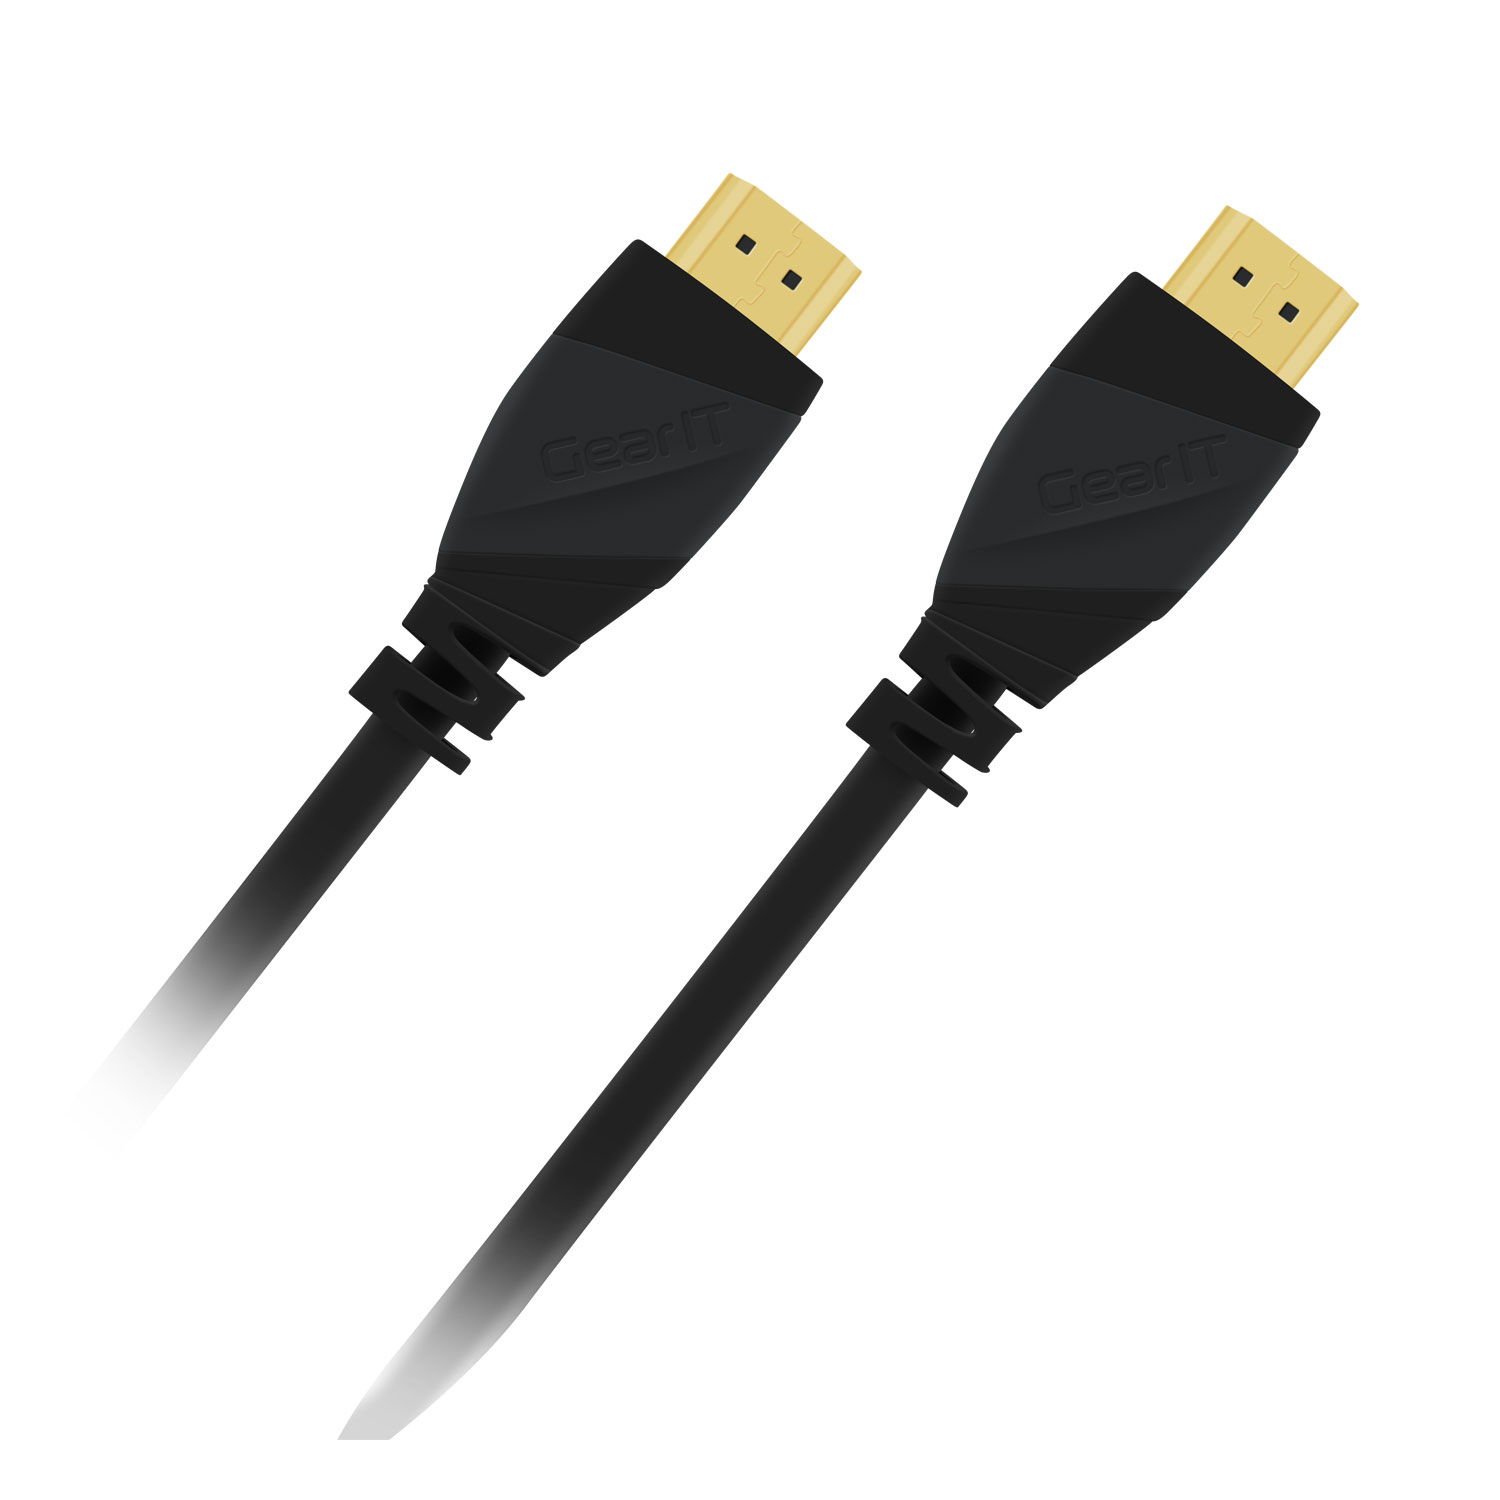 25 Ft HDMI Cable, GearIT (2-Pack) Pro Series HDMI 2.0 Cable 25 Feet / 7.5 Meter High Speed Ethernet Support 4K 60Hz / 1440P 144hz Resolution in 3D Video and 3D Gaming and ARC Audio Return Channel,